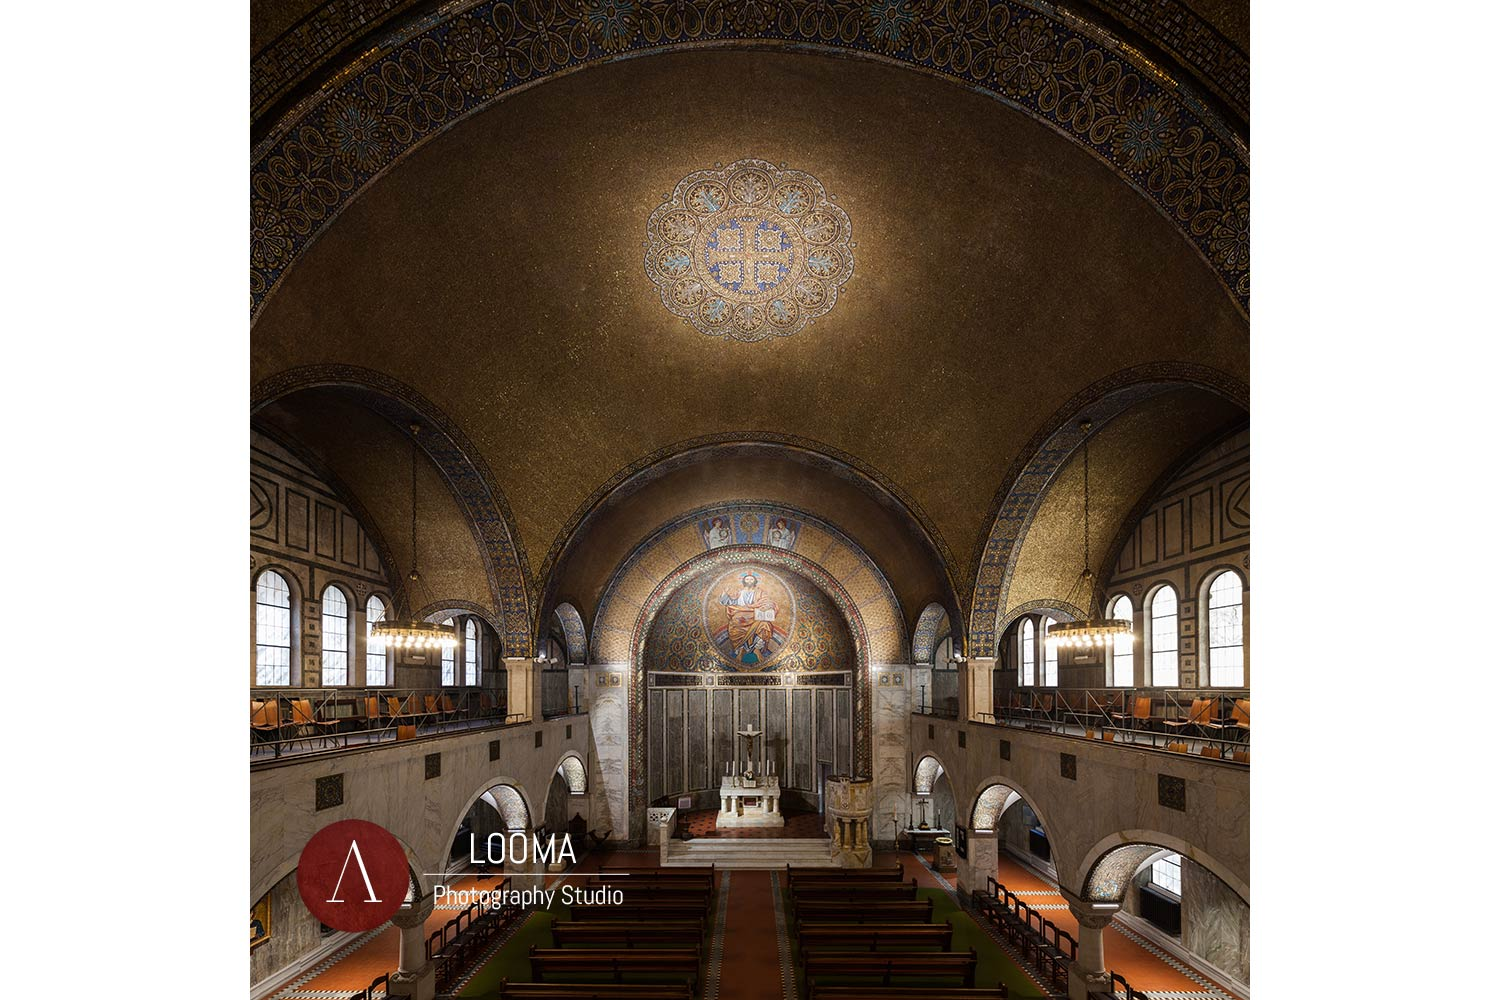 Central nave, apse and main vault lit by the LED lighting devices